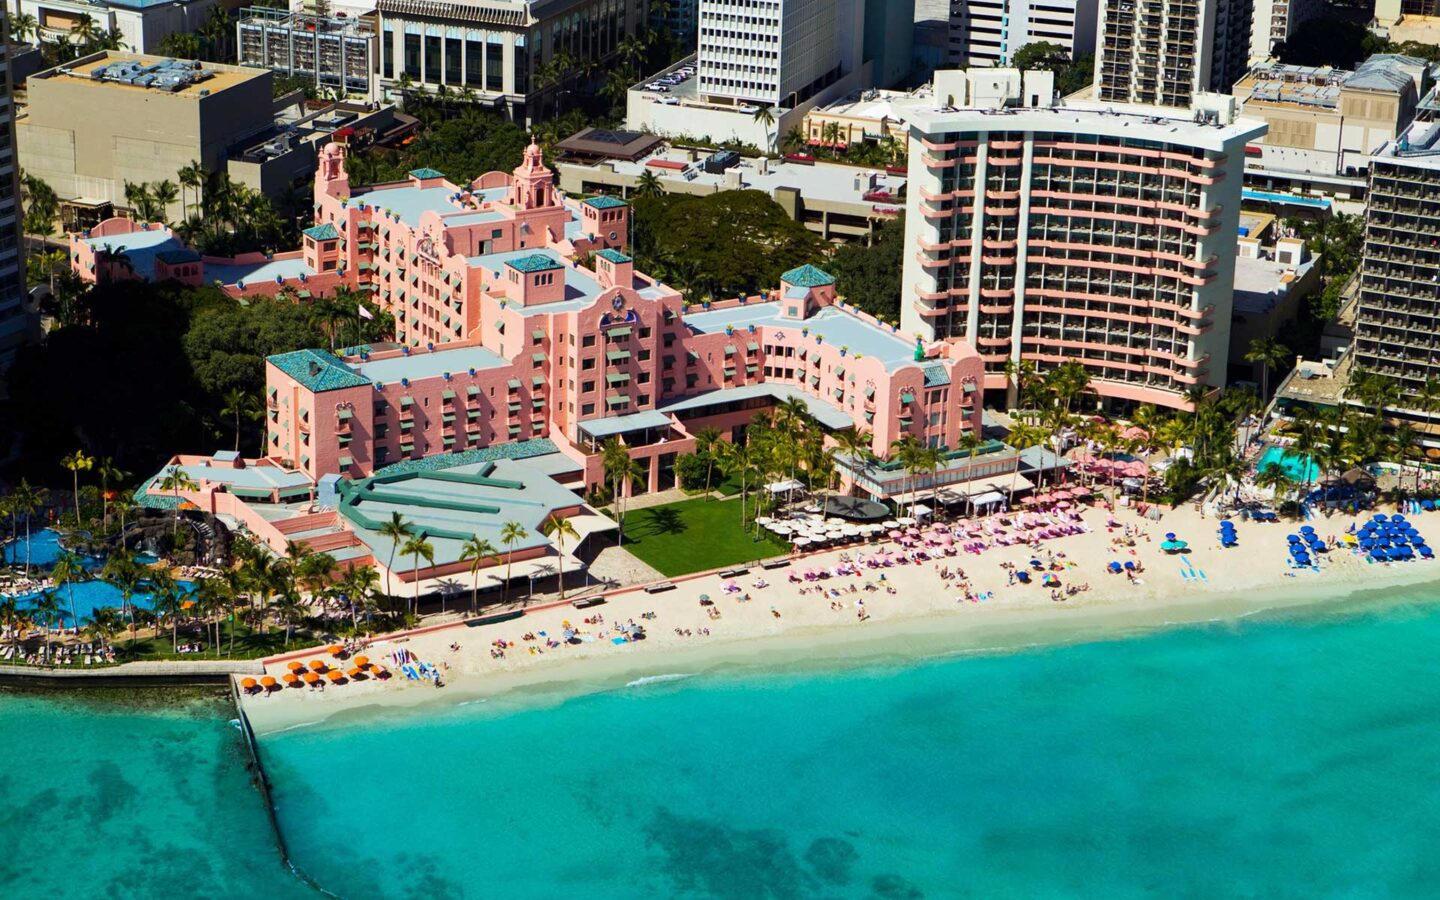 aerial photo of seashore near The Royal Hawaiian during daytime